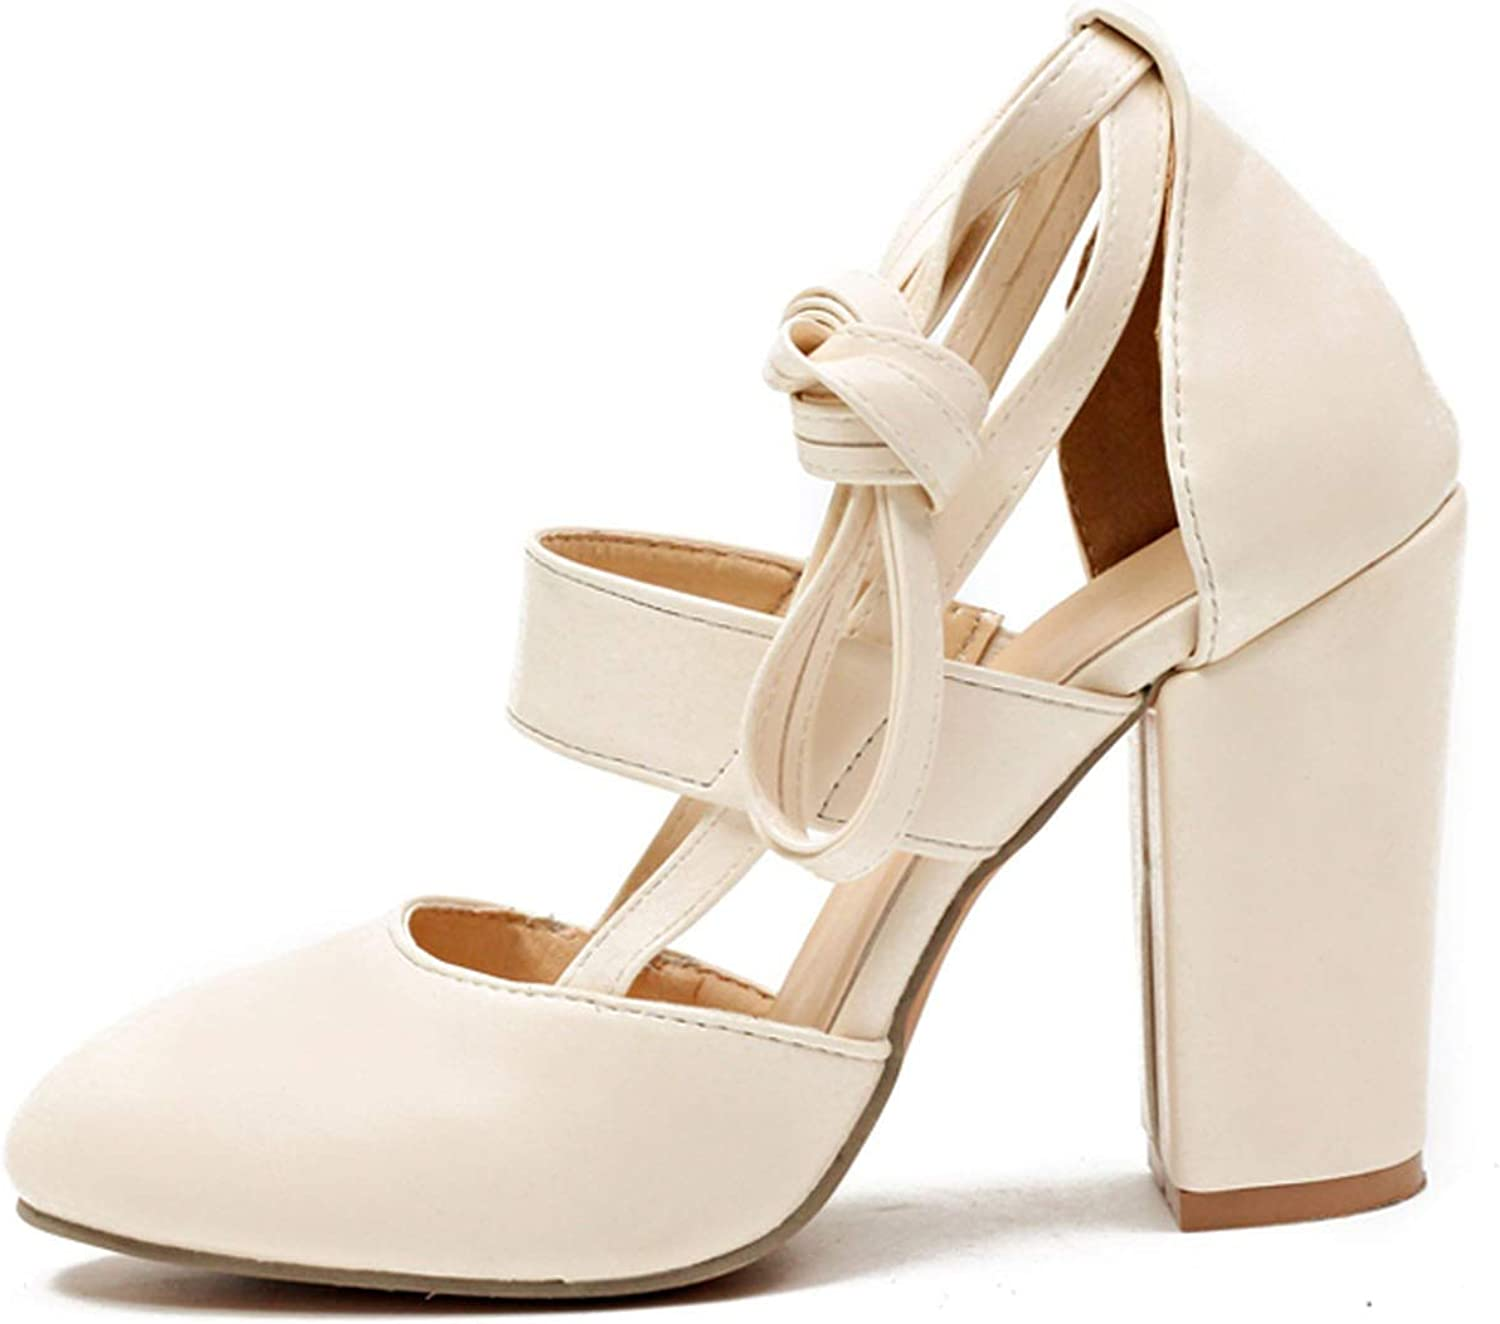 Monica's house Plus Size Female Ankle Strap High Heels shoes Thick Heel for Women Party Wedding,Beige-D2314,6.5